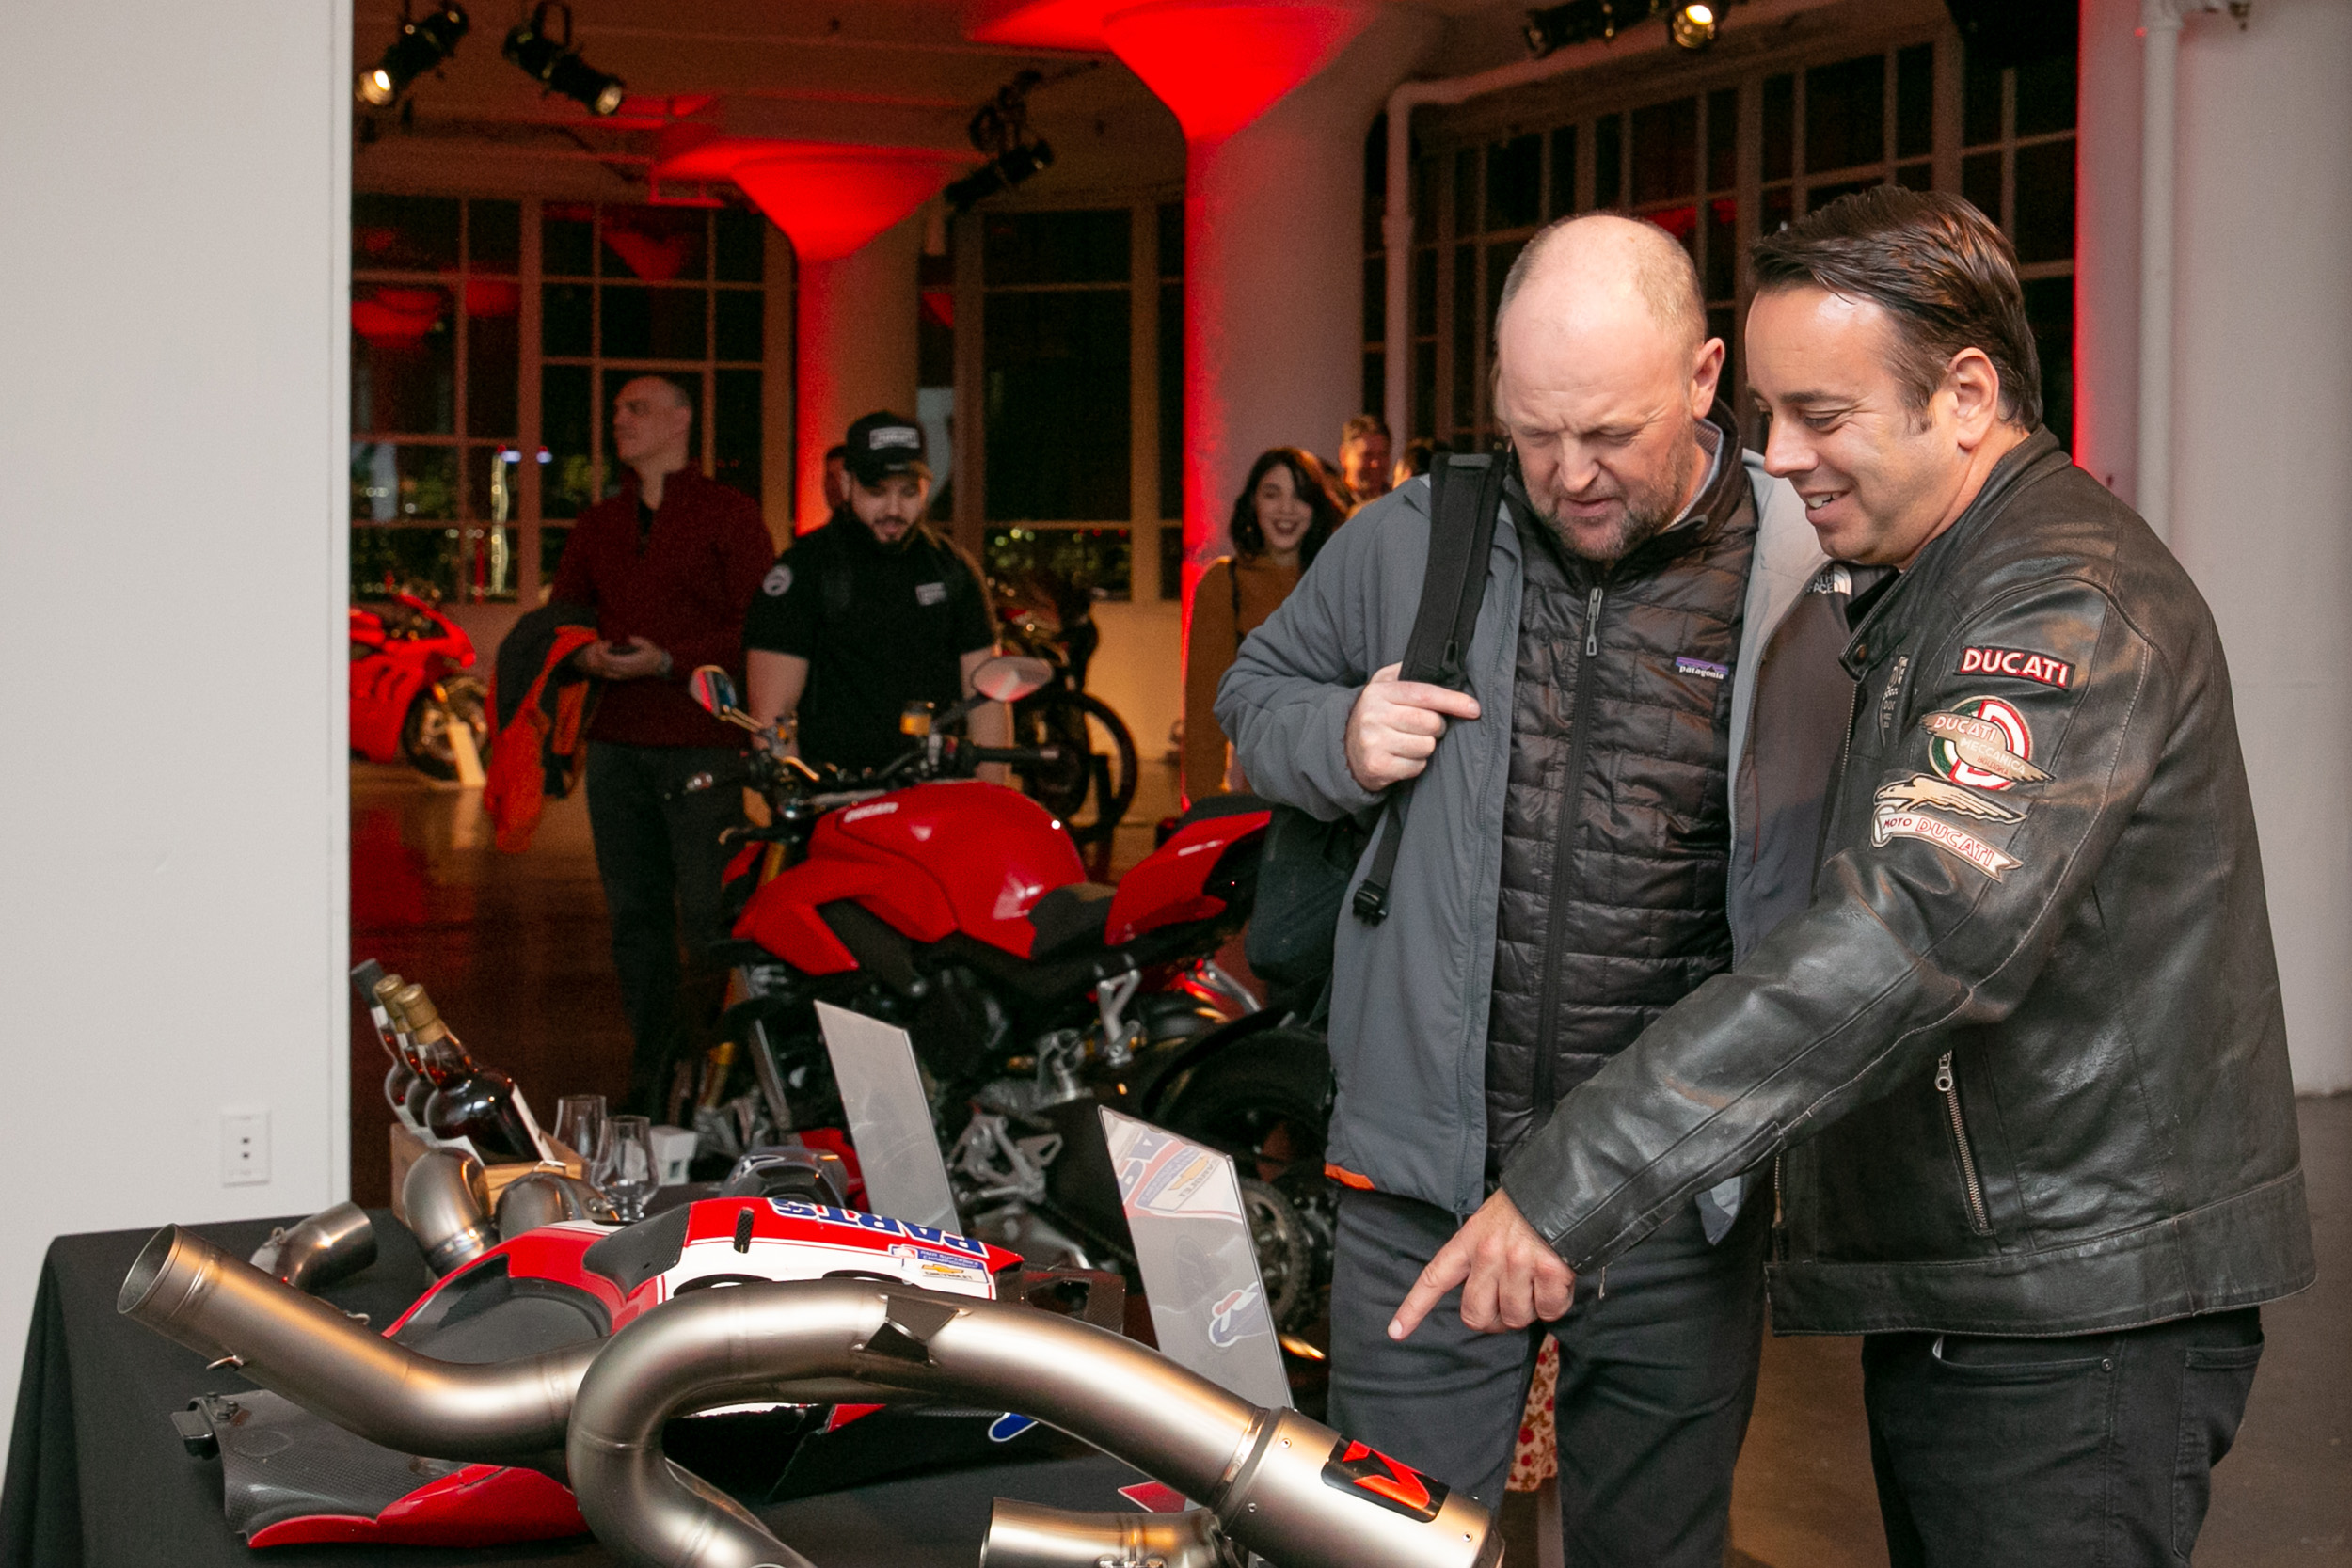 191210 Ducati North America Raises Funds for Carlin Dunne Foundation With Successful Charity Auction [3]